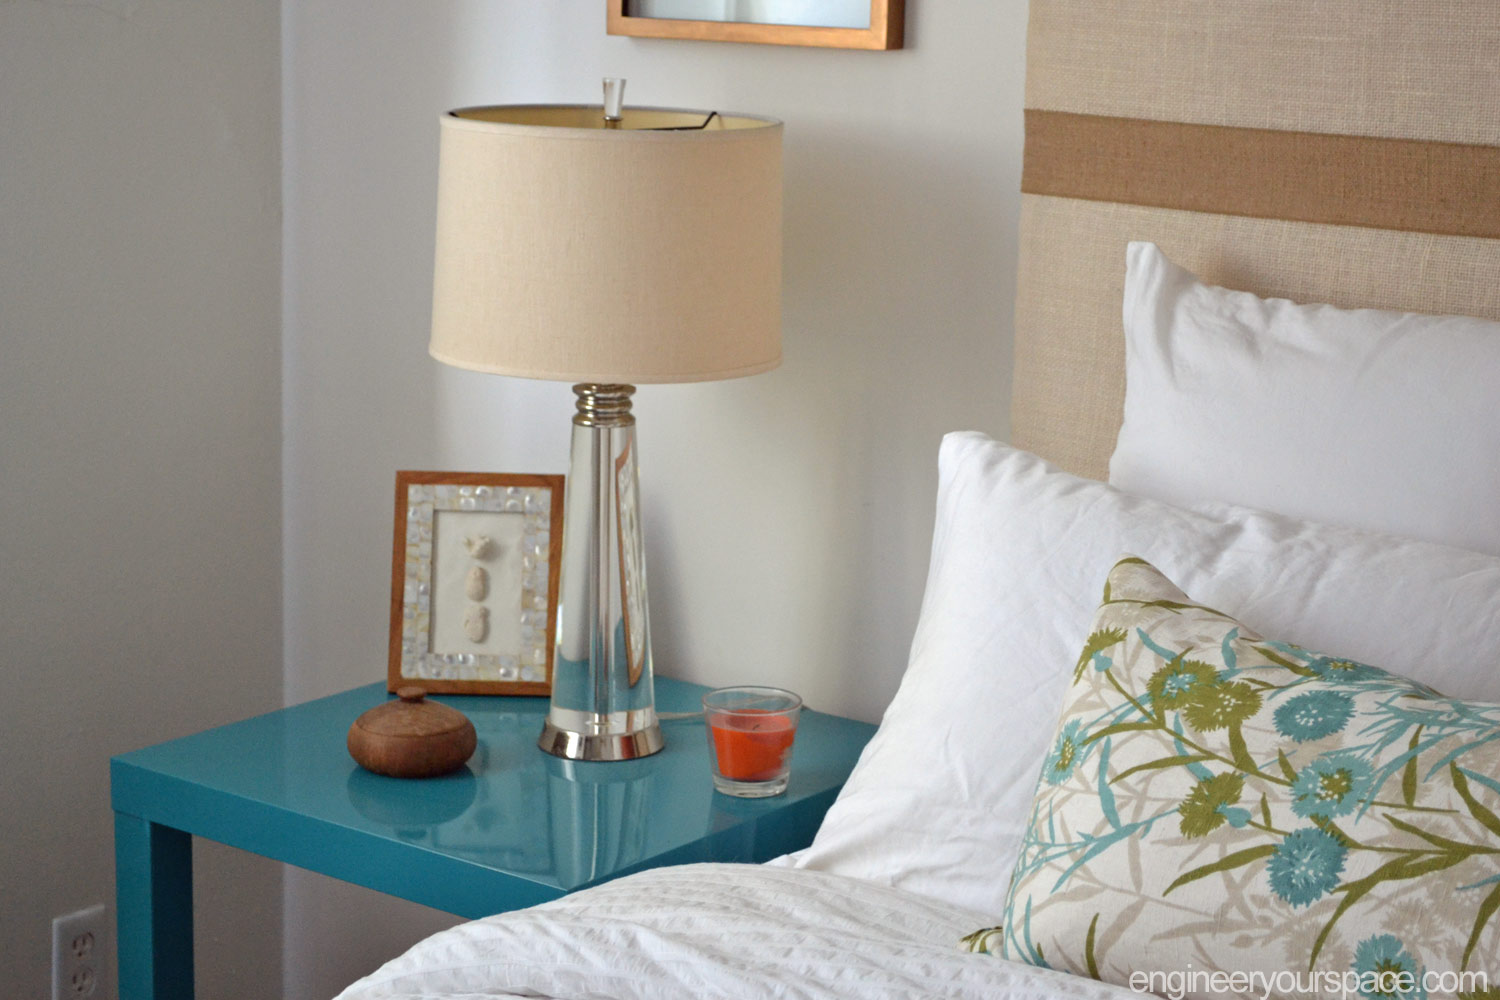 diy nightstand ikea lack table hack smart diy solutions for renters